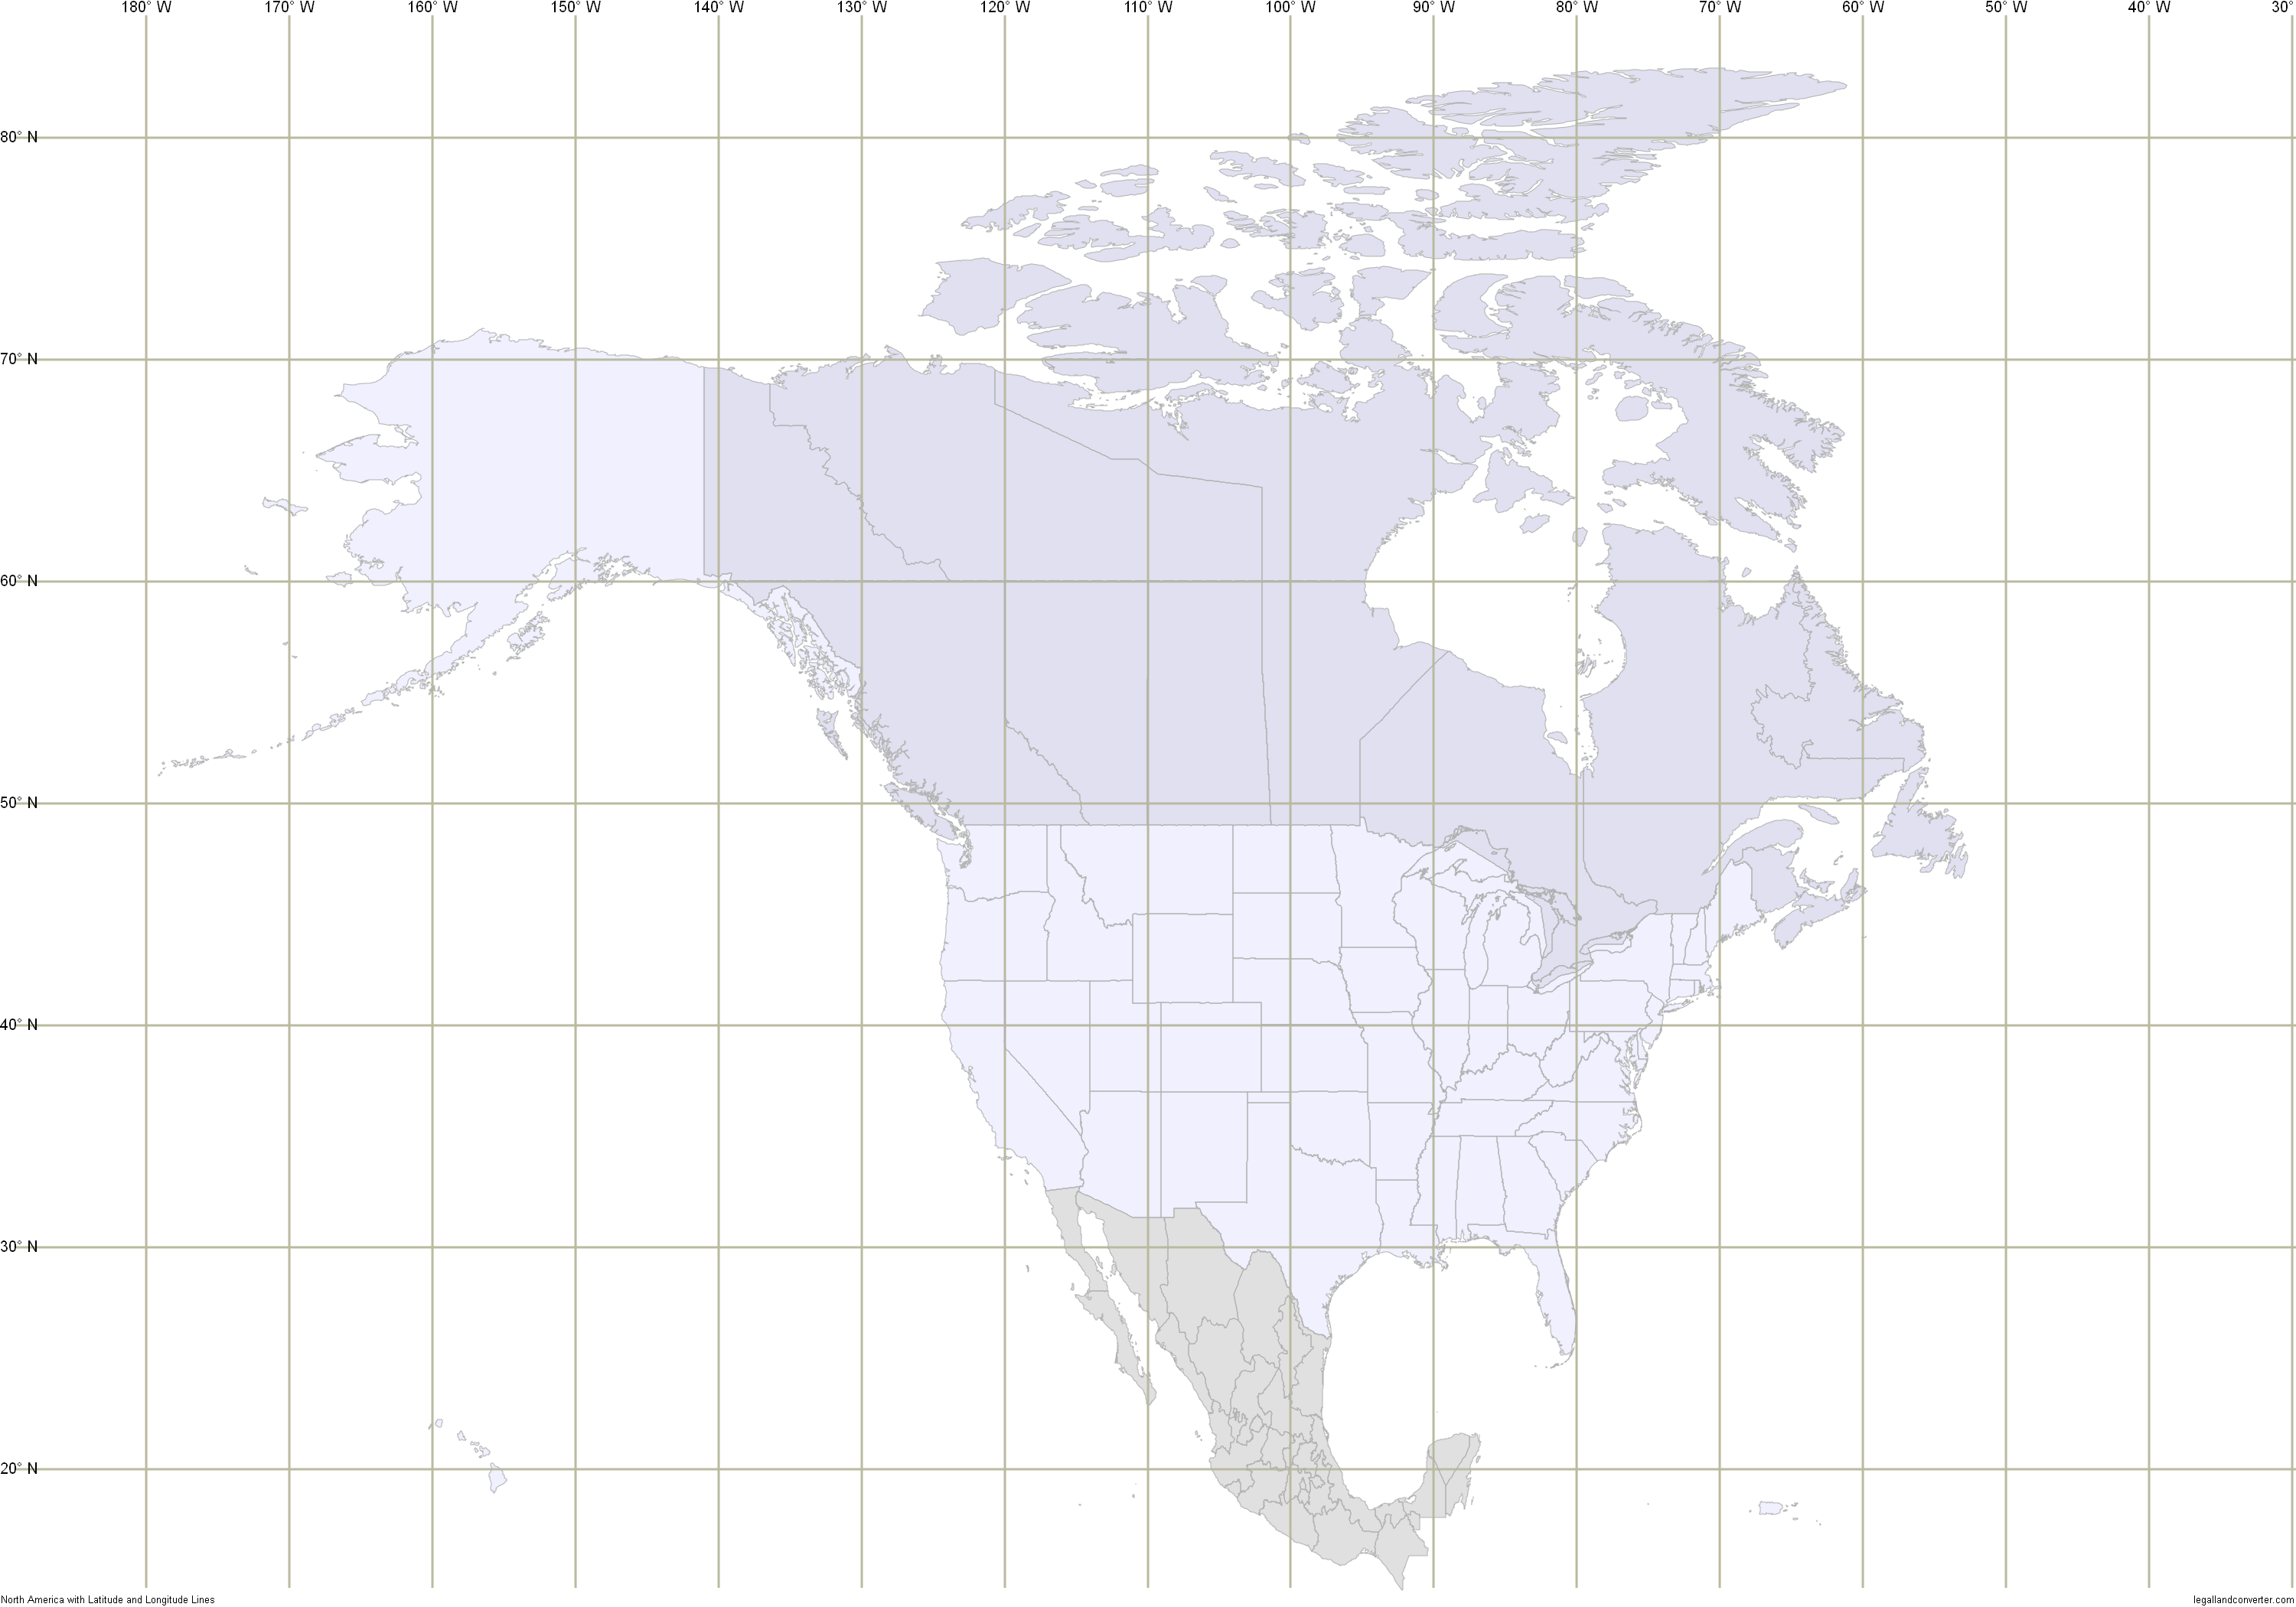 Map Of North America With Latitude And Longitude Grid - Map with latitude and longitude represented as parallel